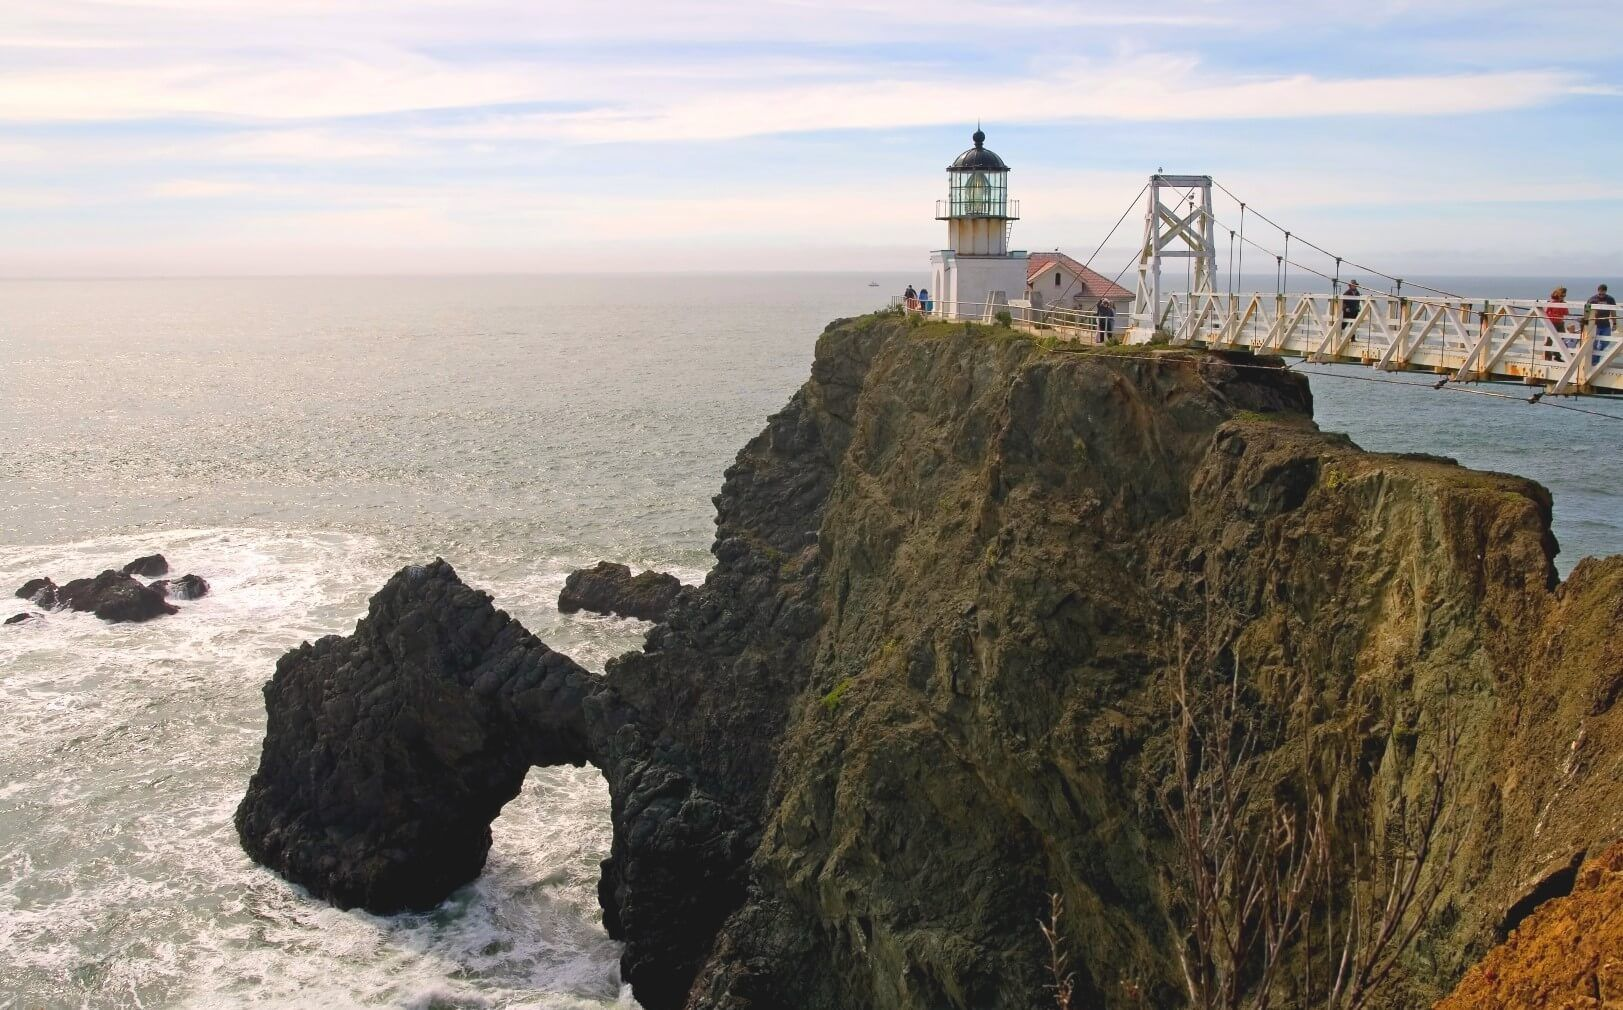 Point Bonita Lighthouse is out on the rocky point on the north side of the entrance to San Francisco Bay. There is no beach access from this point, but the